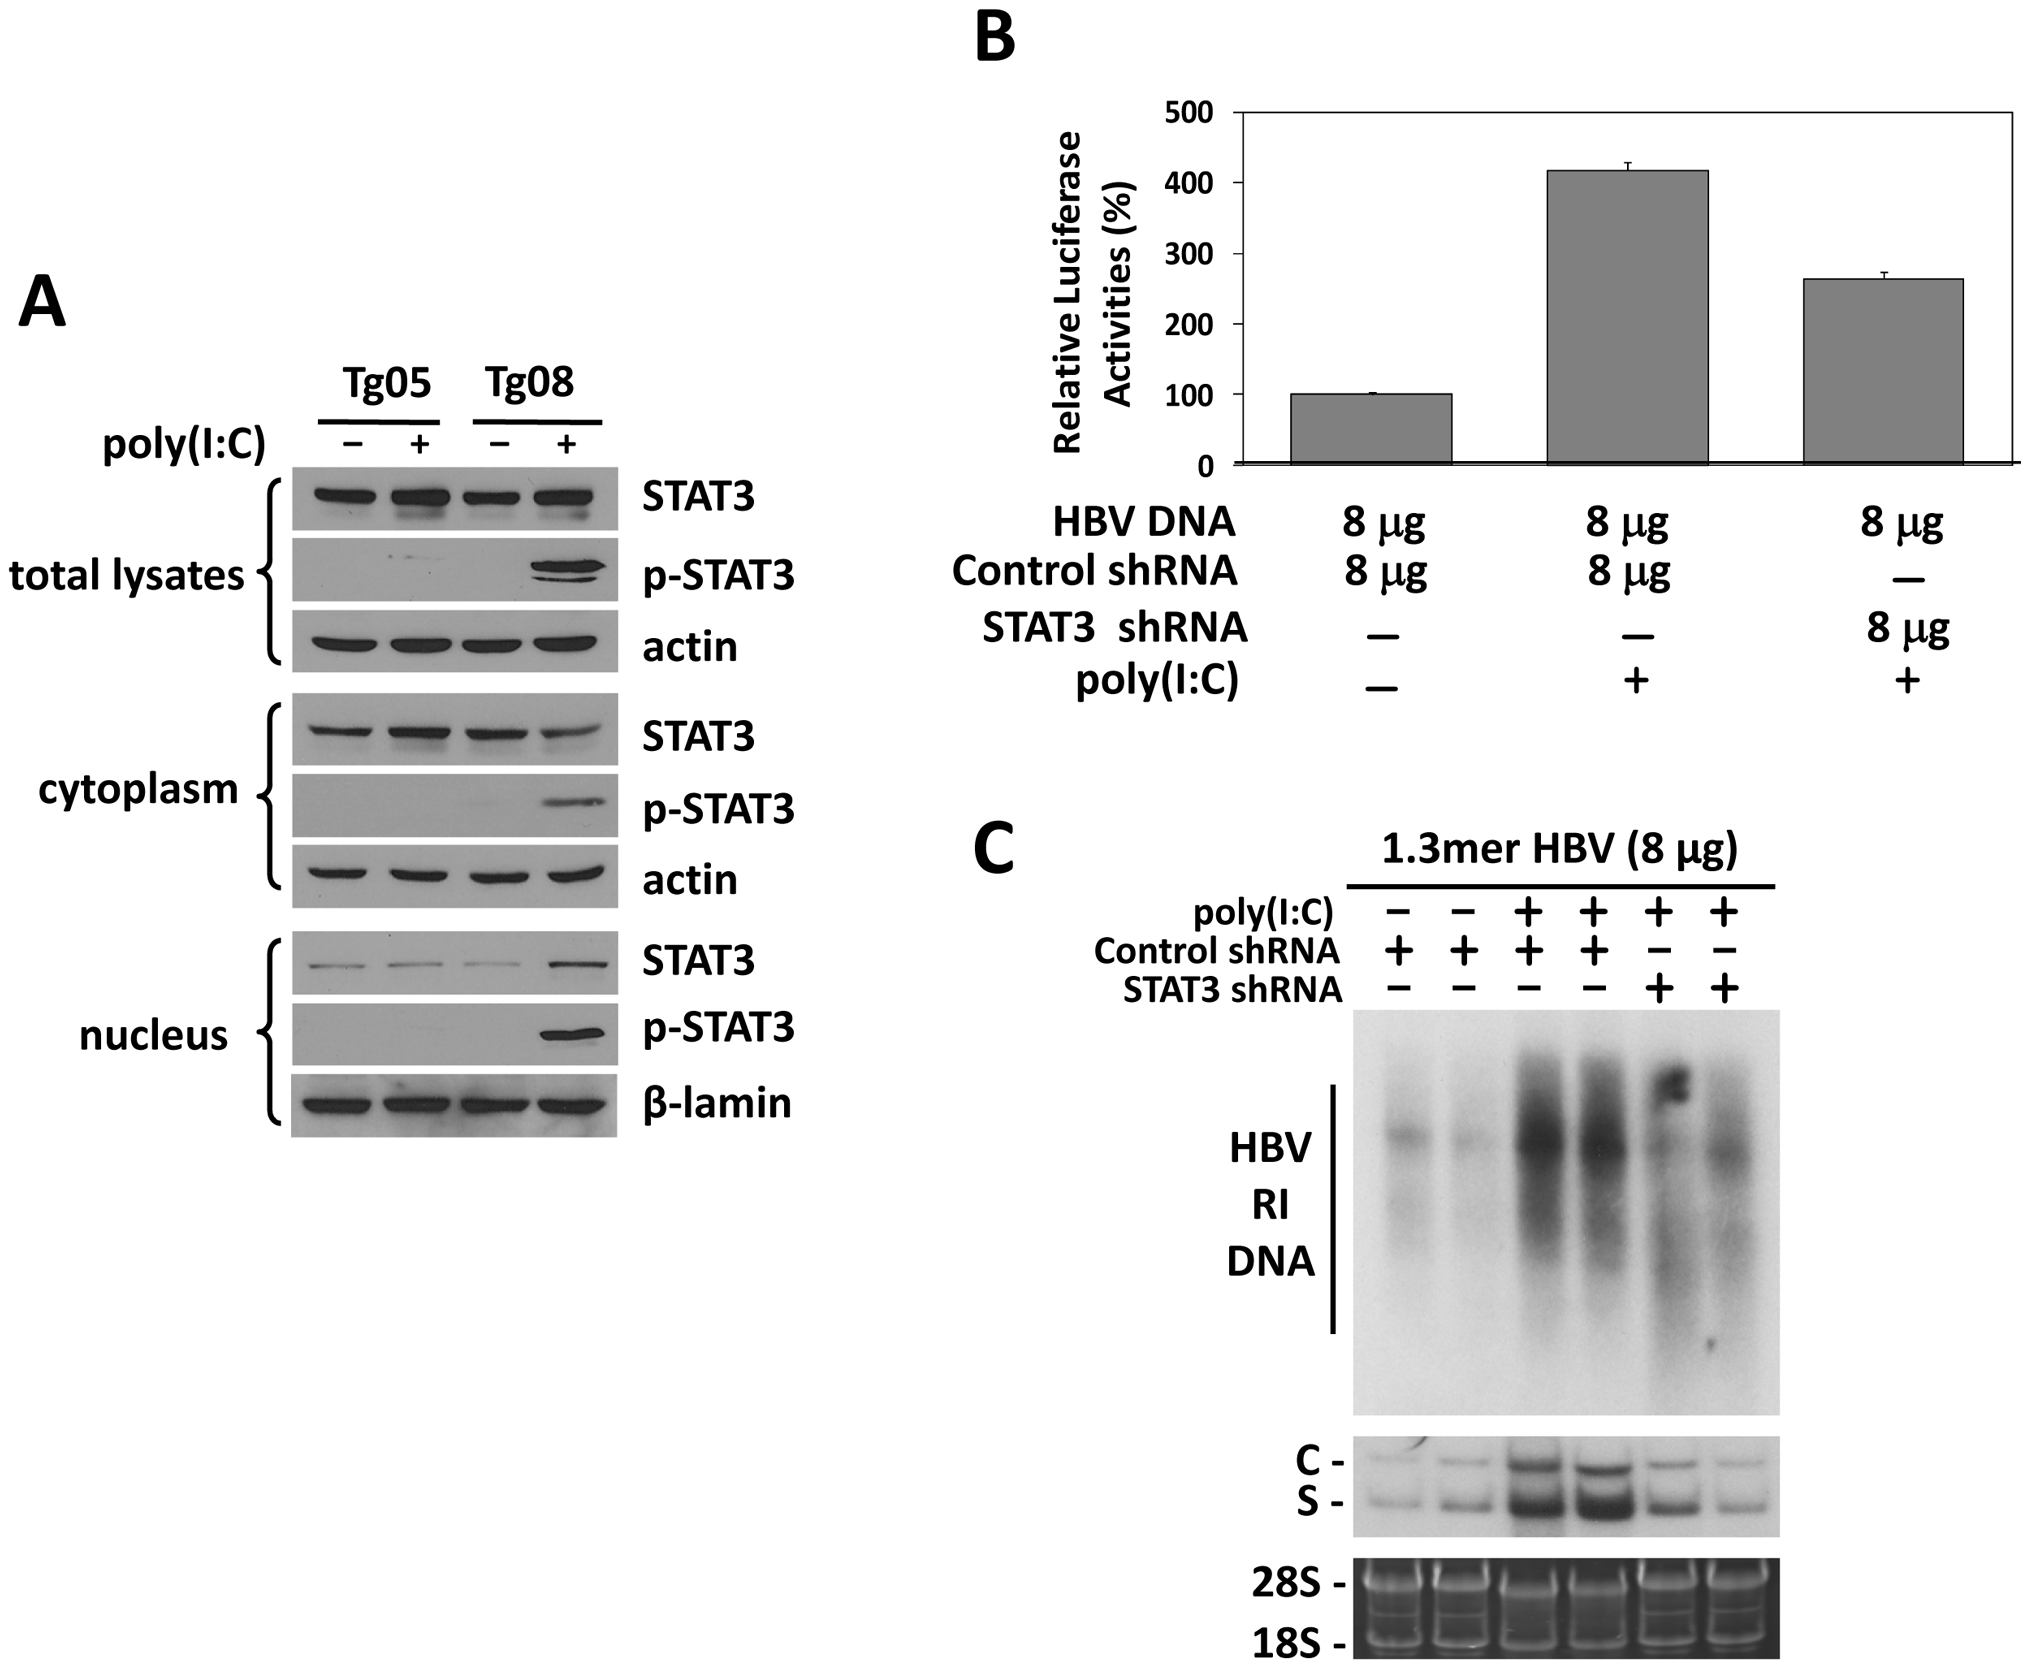 Analysis of STAT3 in HBV mice.